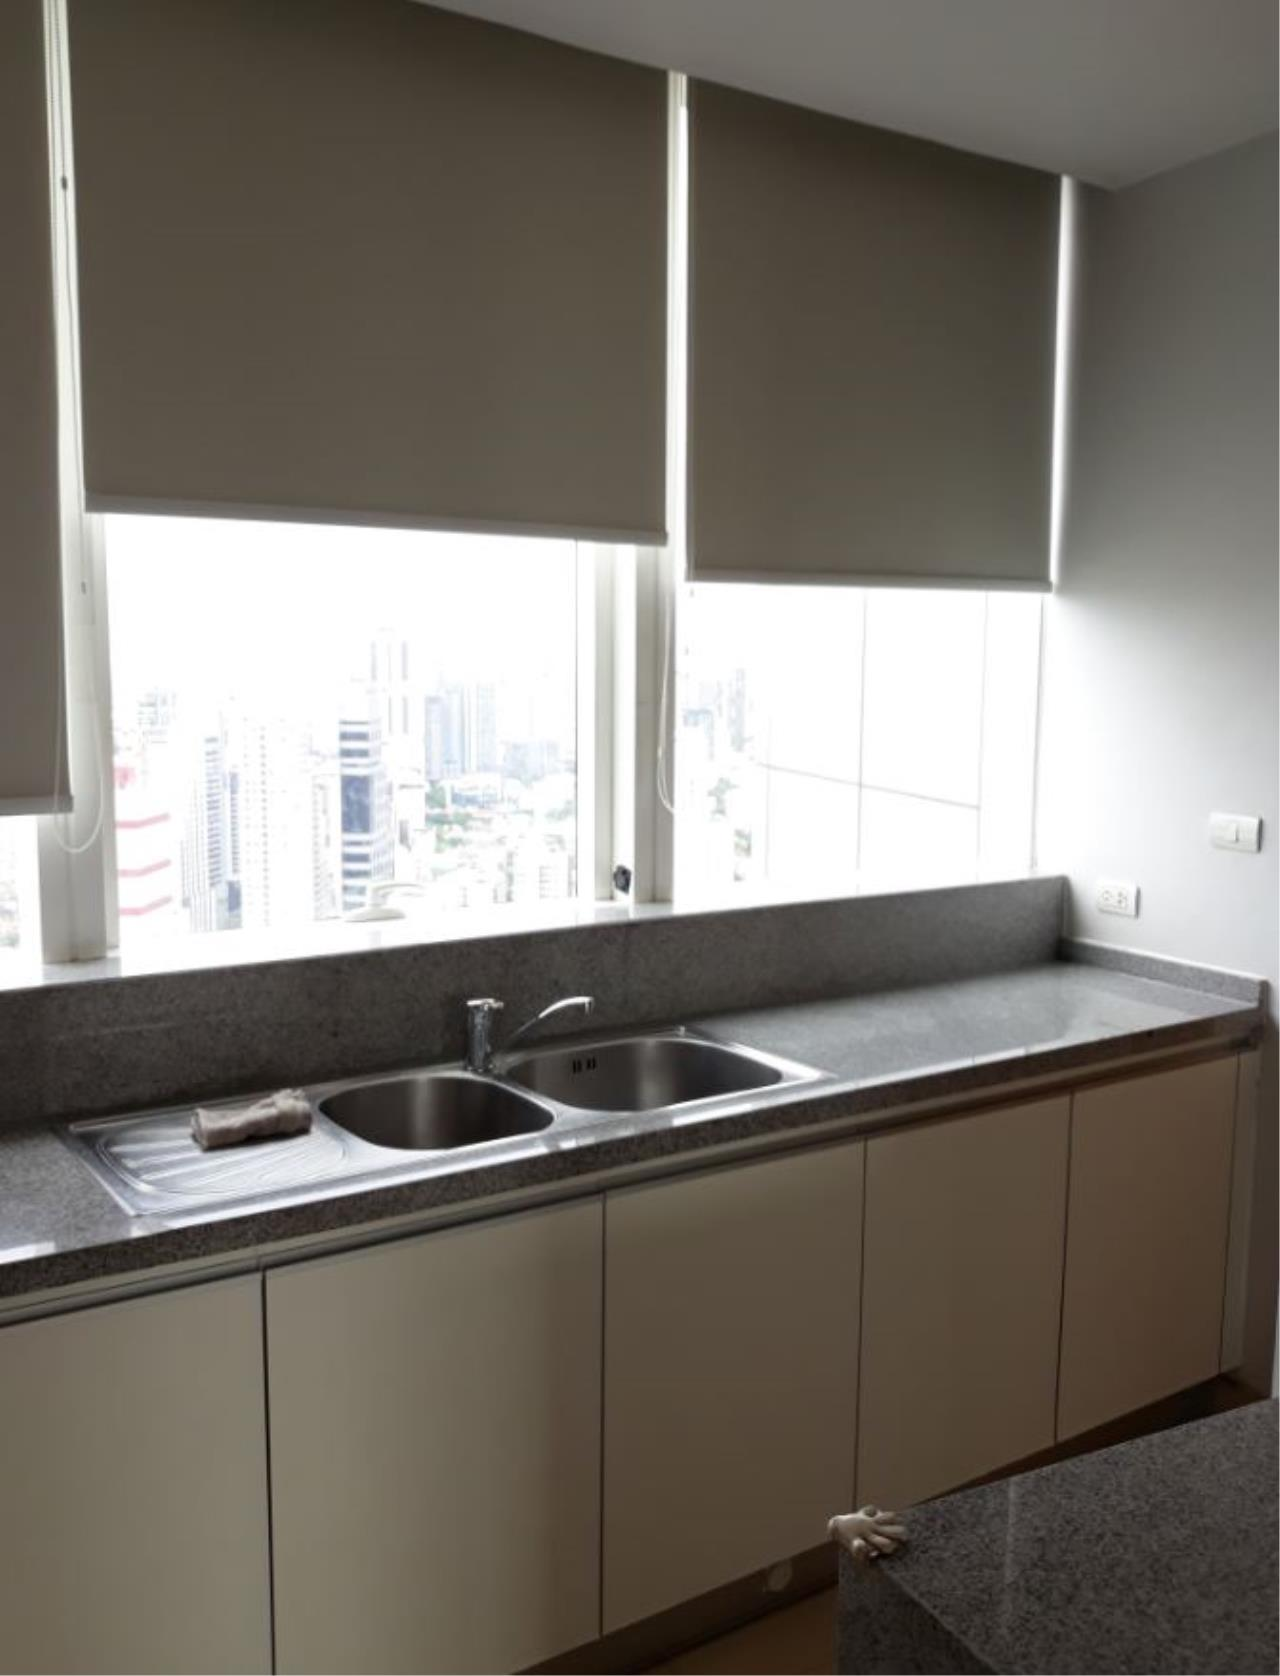 Right Move Thailand Agency's CA5502 Millennium Residence for Rent 70,000 THB - 2 Bedrooms - 128 sqm. 15